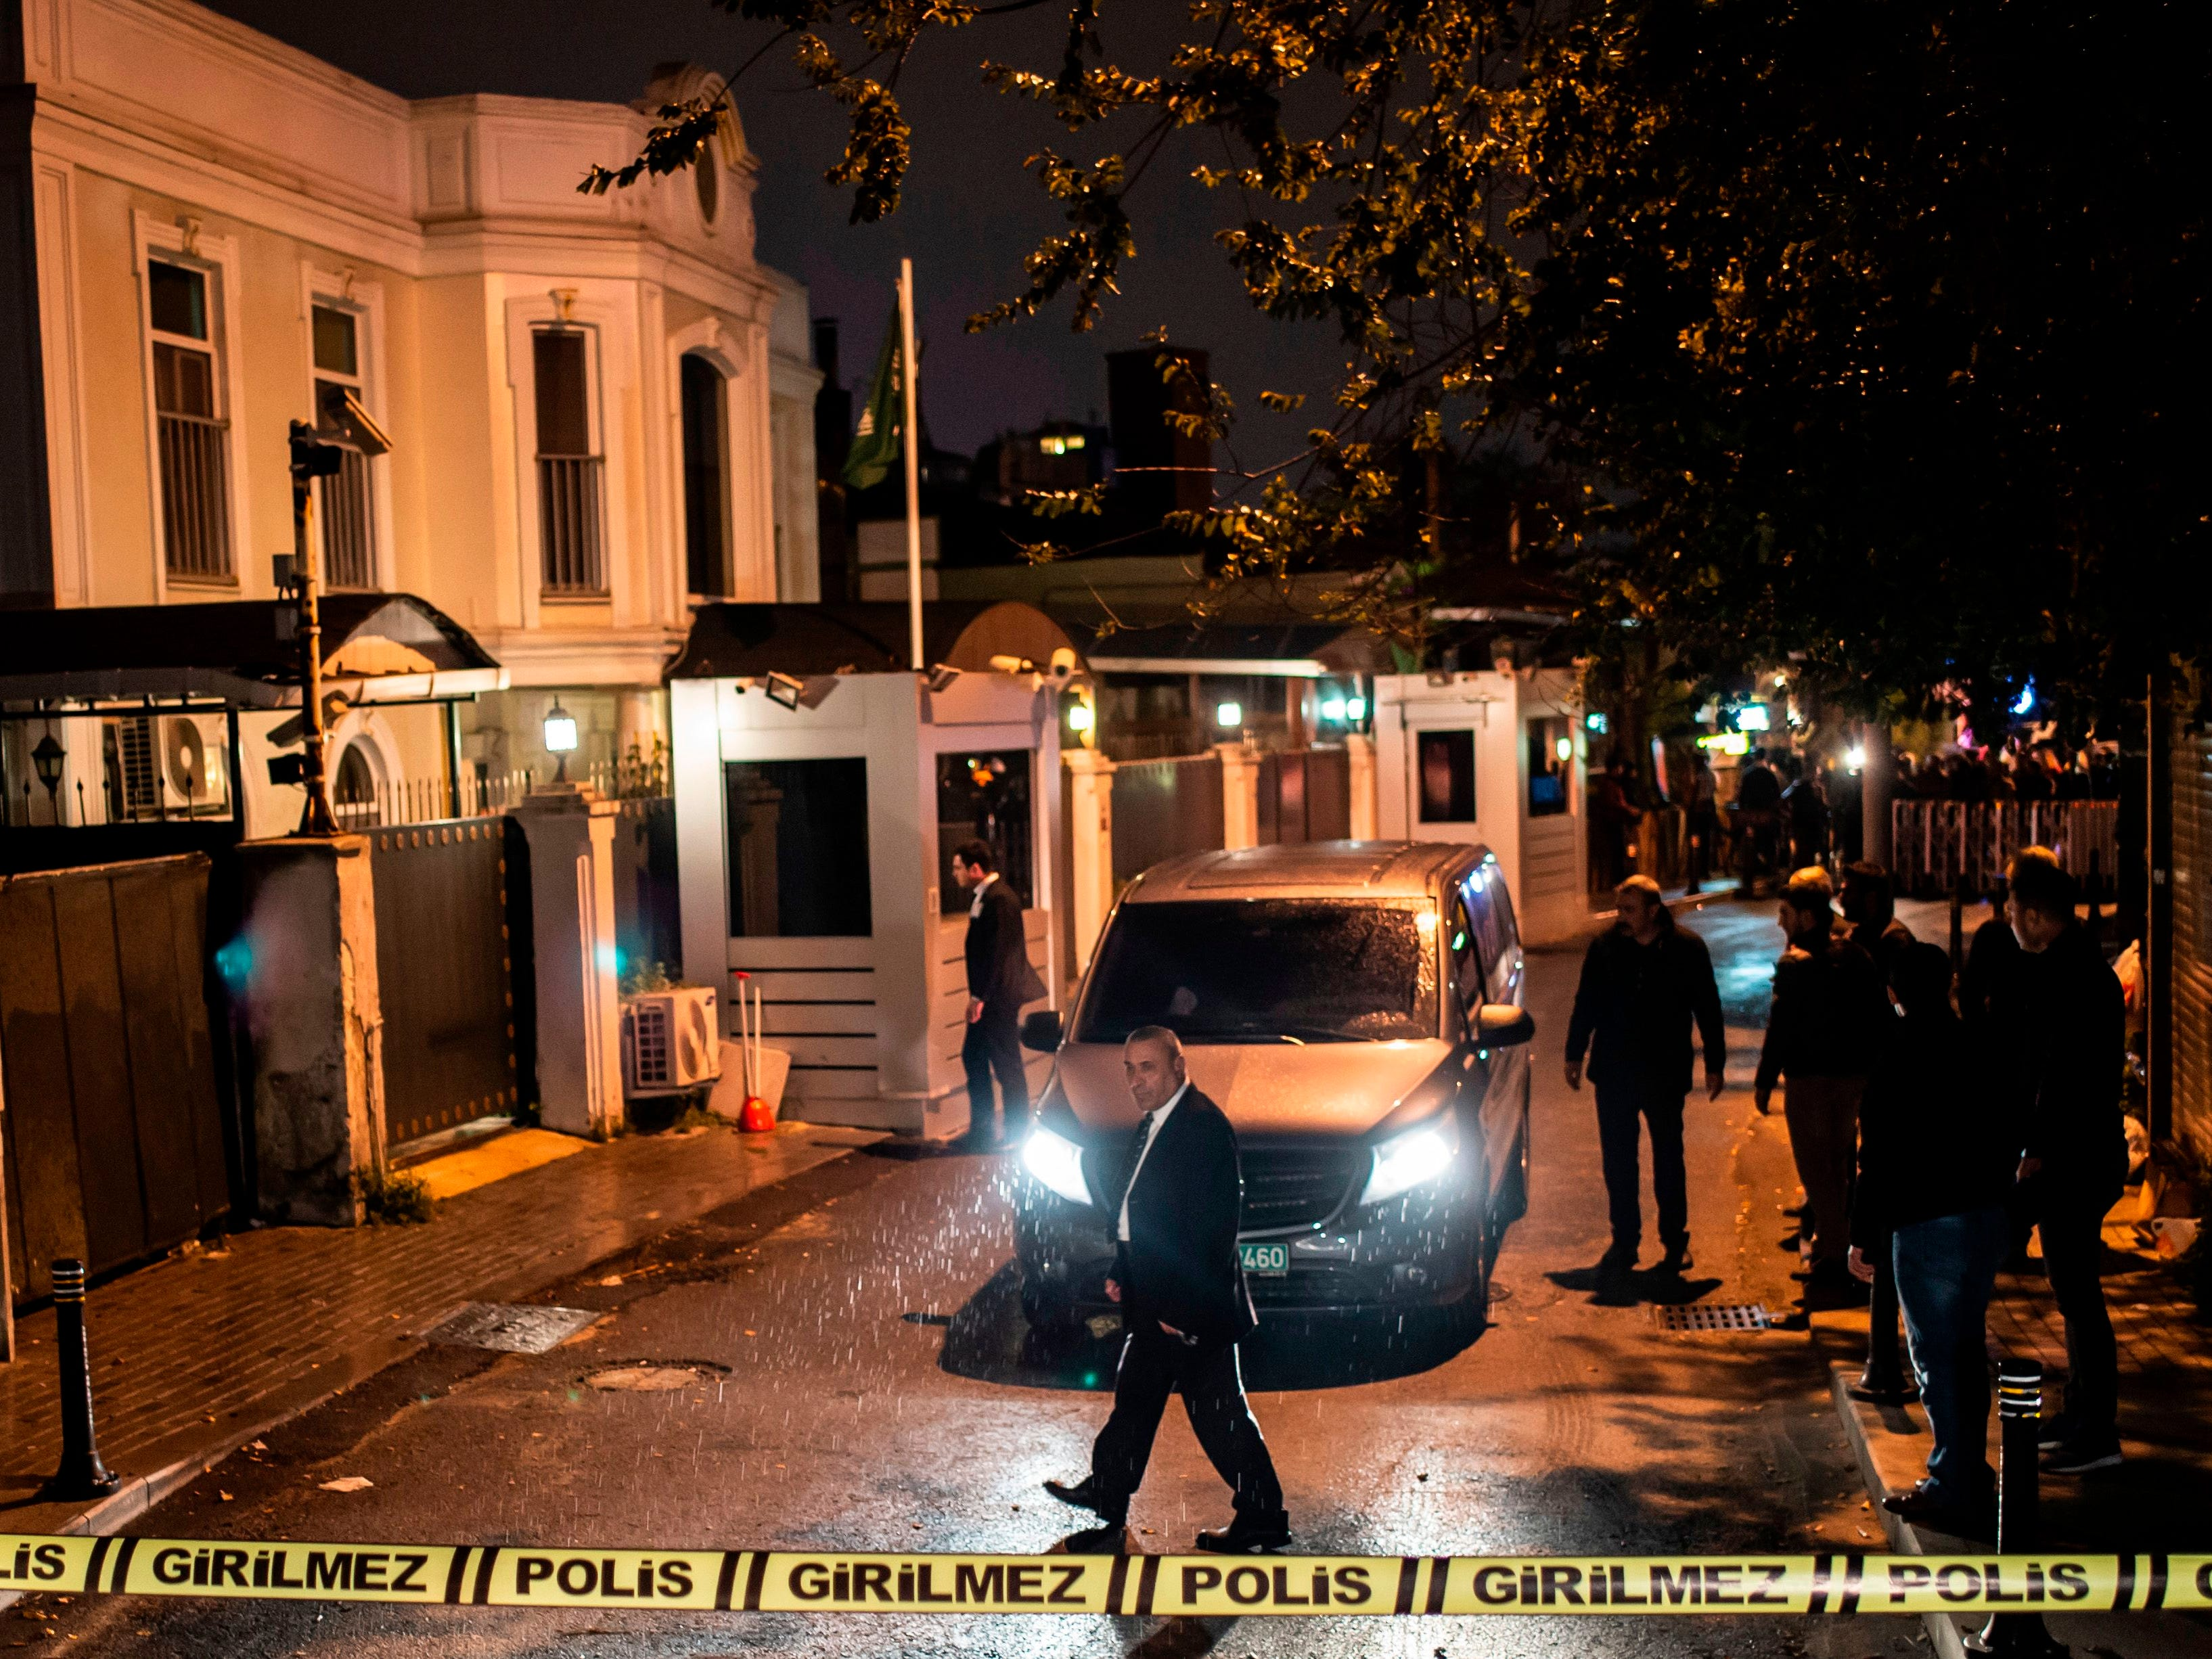 Turkish forensic police officers arrive for investigation at the residence of the Saudi consul in Istanbul, Oct. 16, 2018.